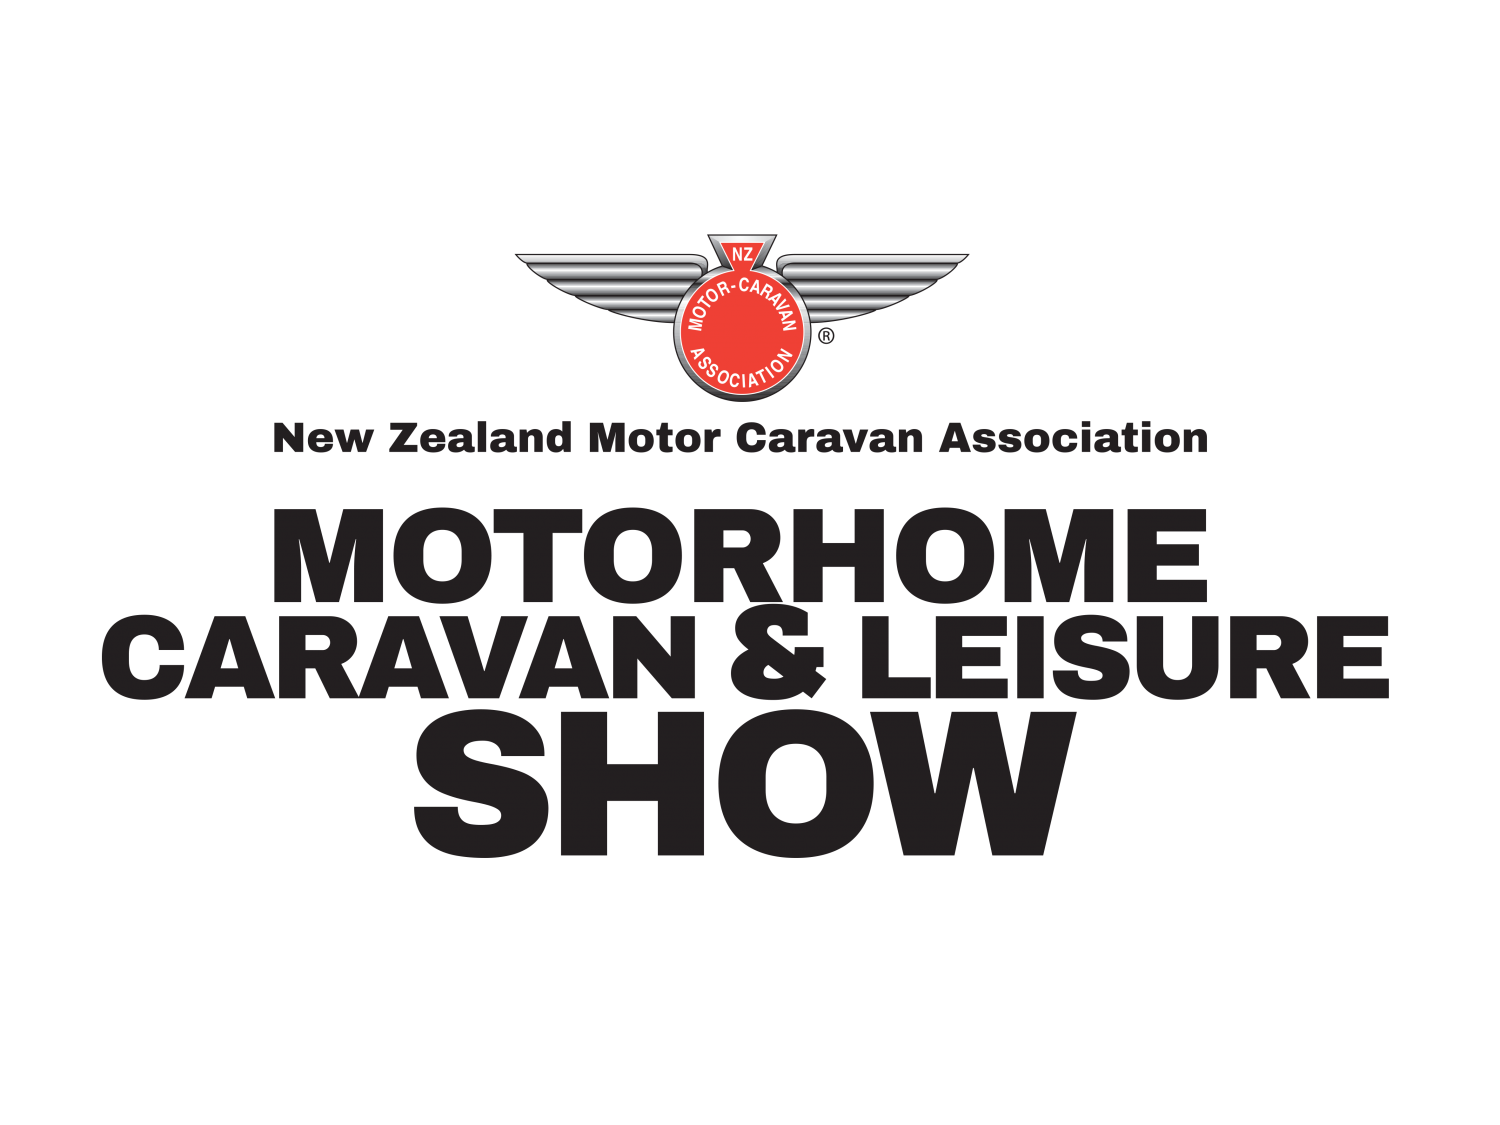 The New Zealand Motorhome, Caravan & Leisure Show